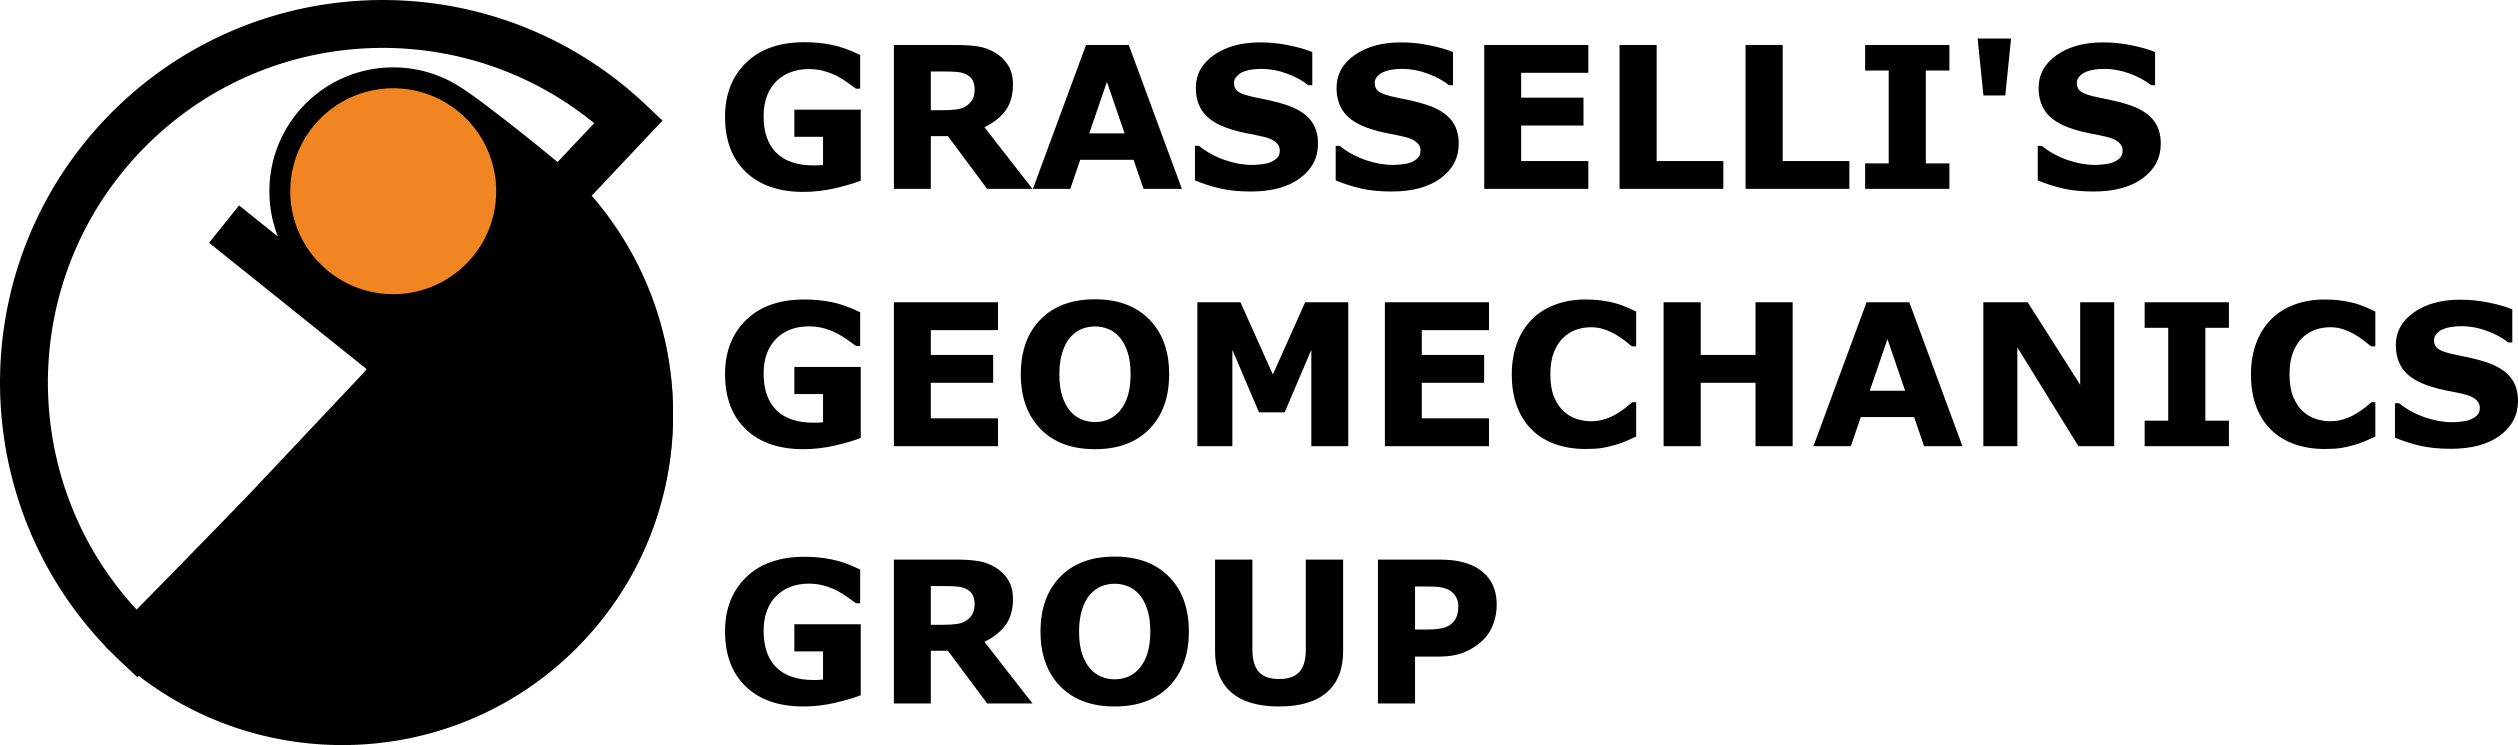 Grasselli's Geomechanics Group